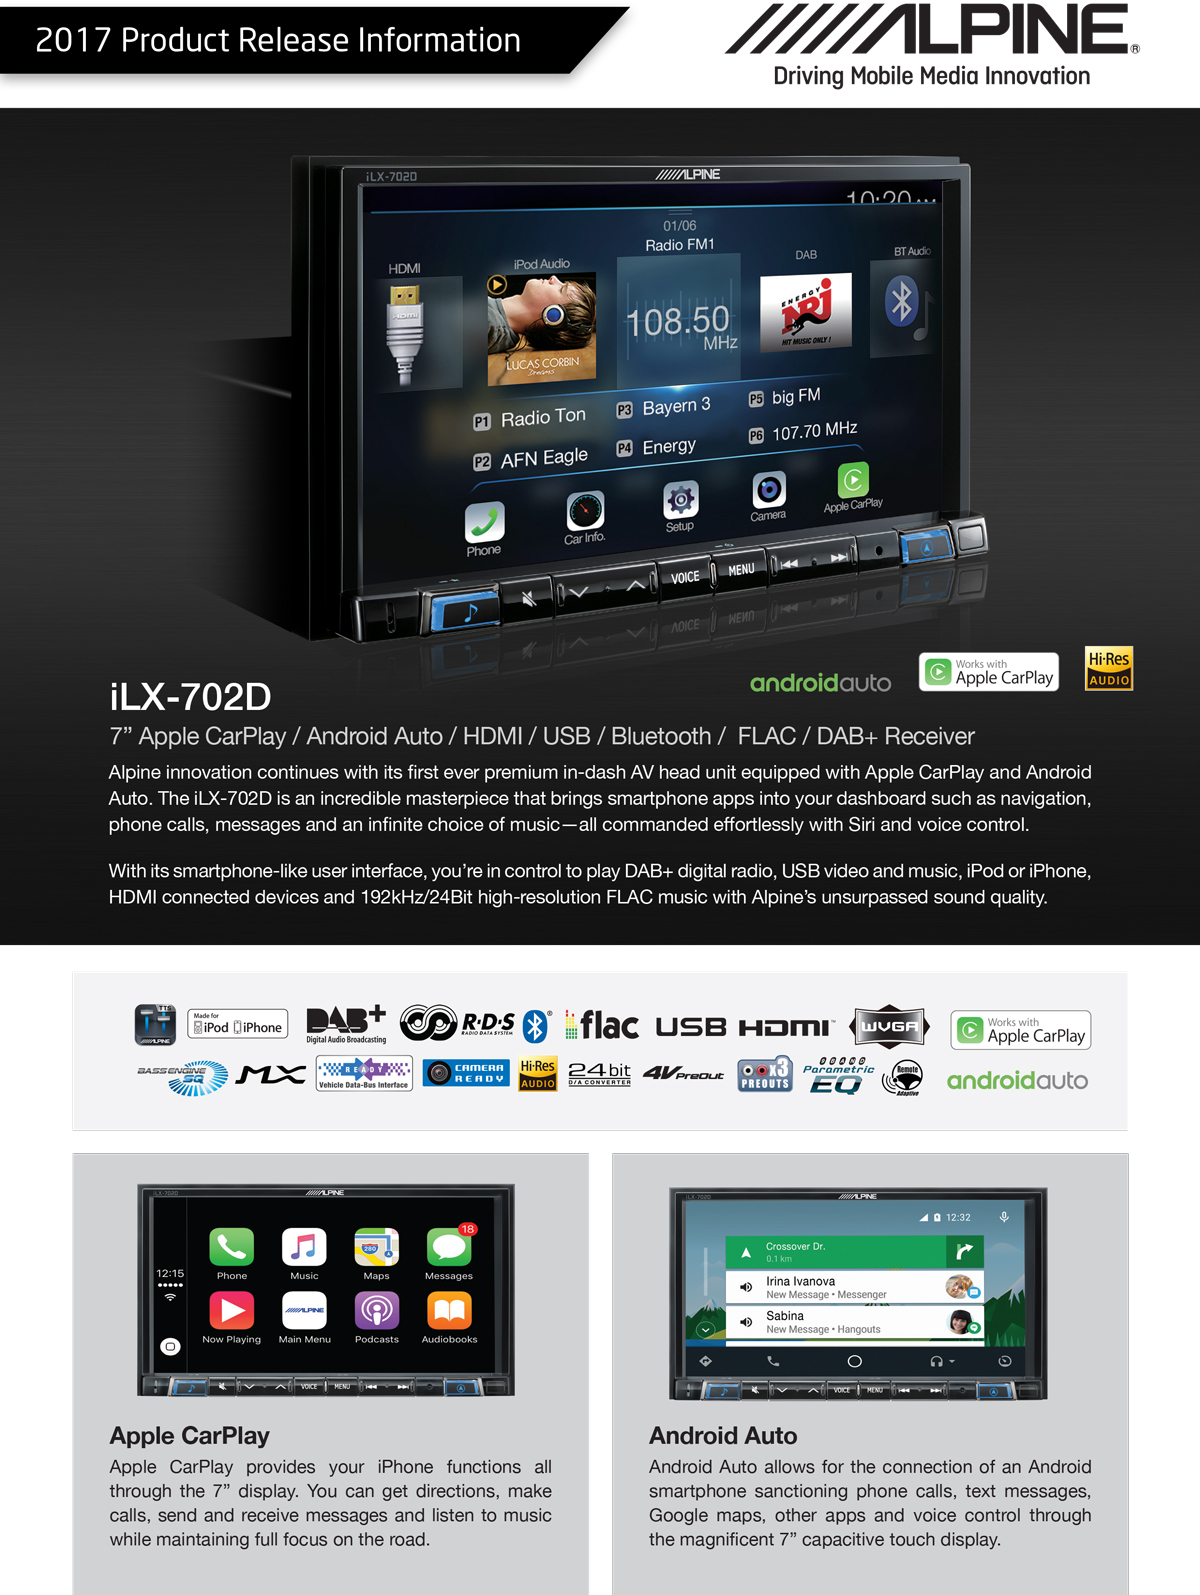 ilx-702d-product-release-sheet-rrp-1.jpg